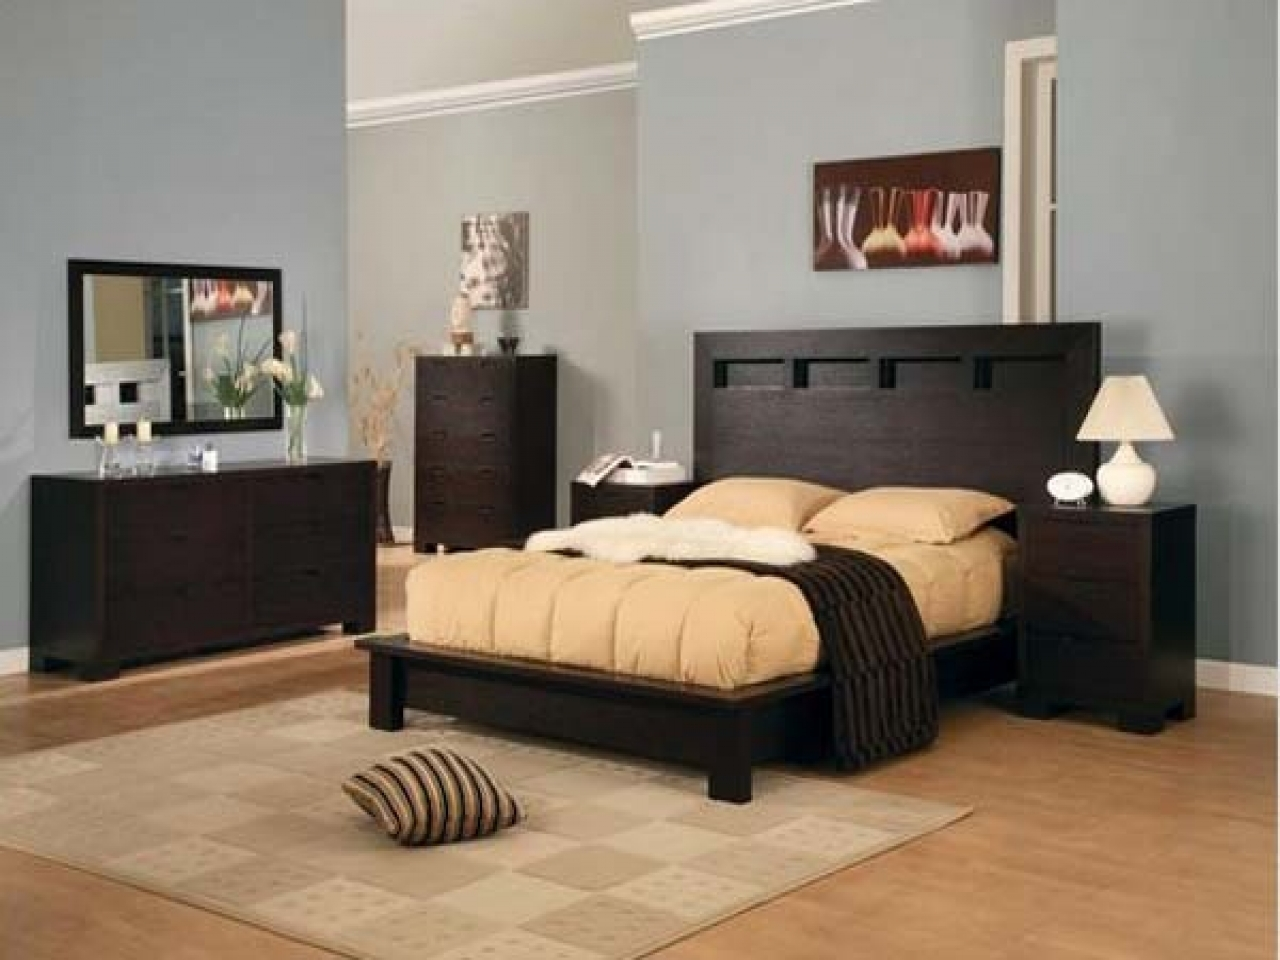 Bedrooms for men mens bedroom ideas male bedroom color